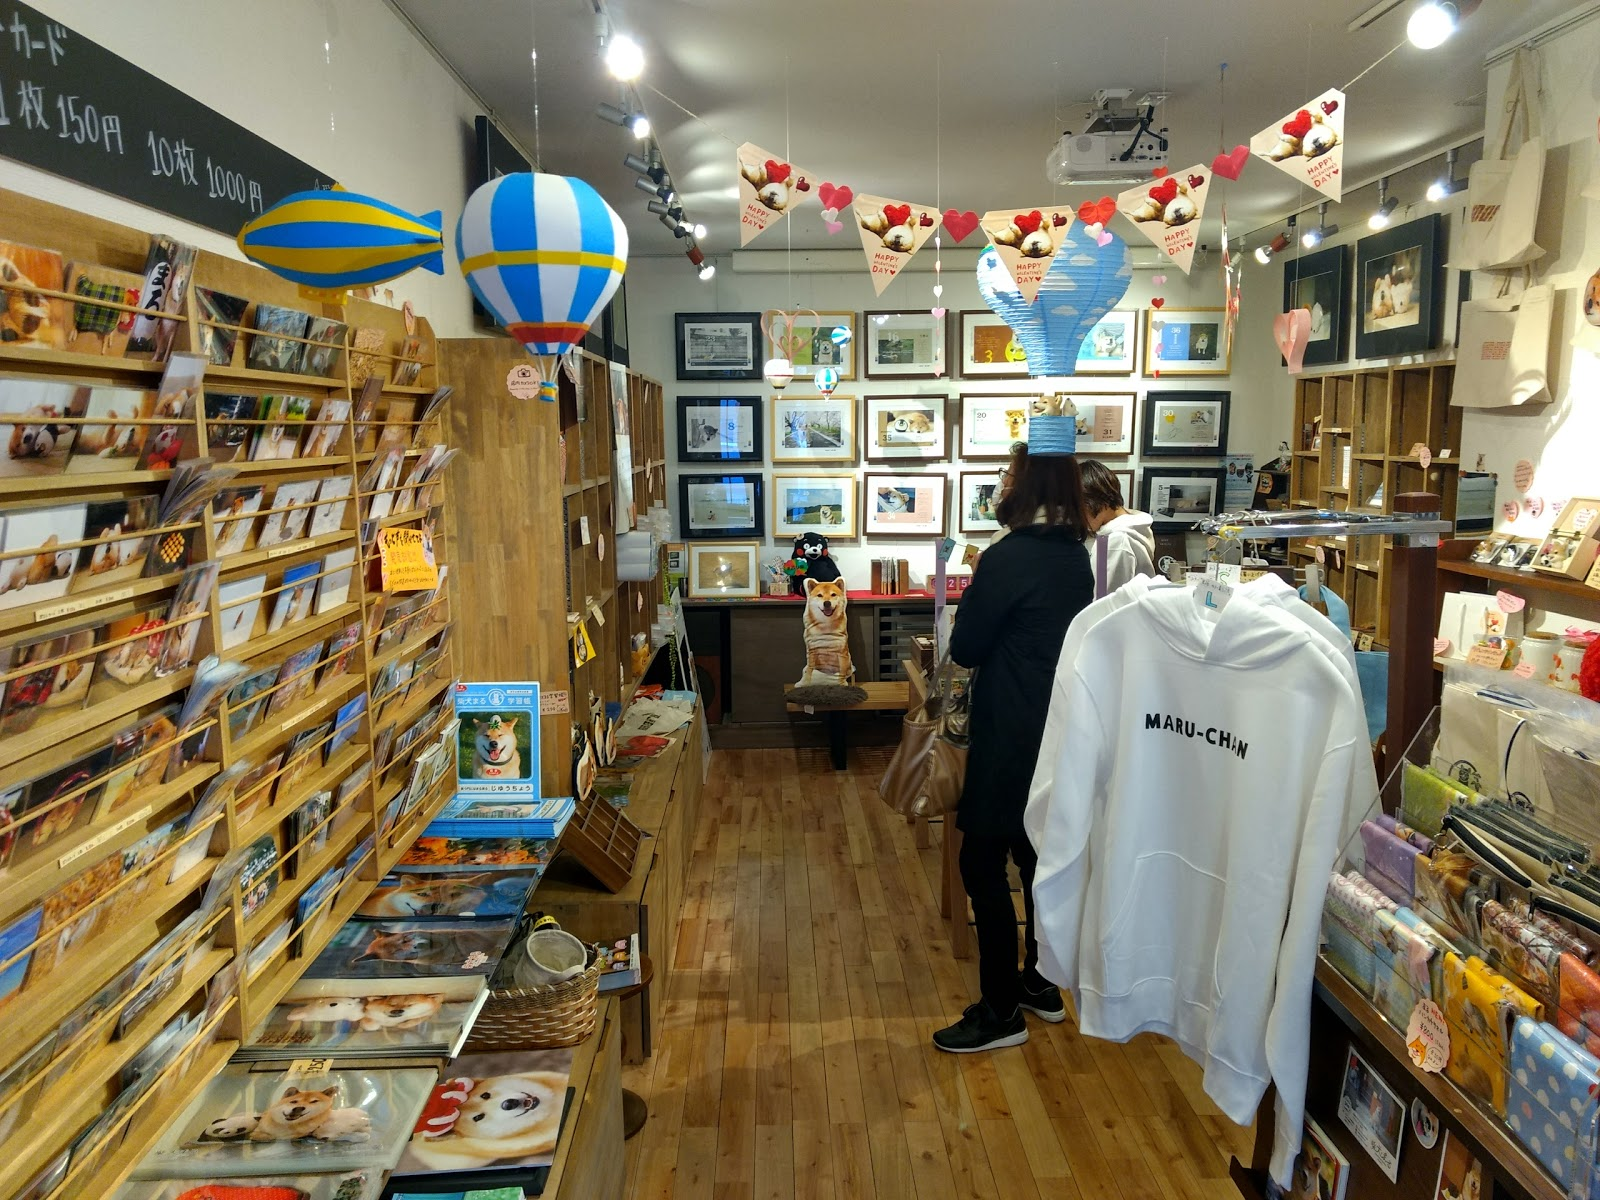 Gallery Marusanにて